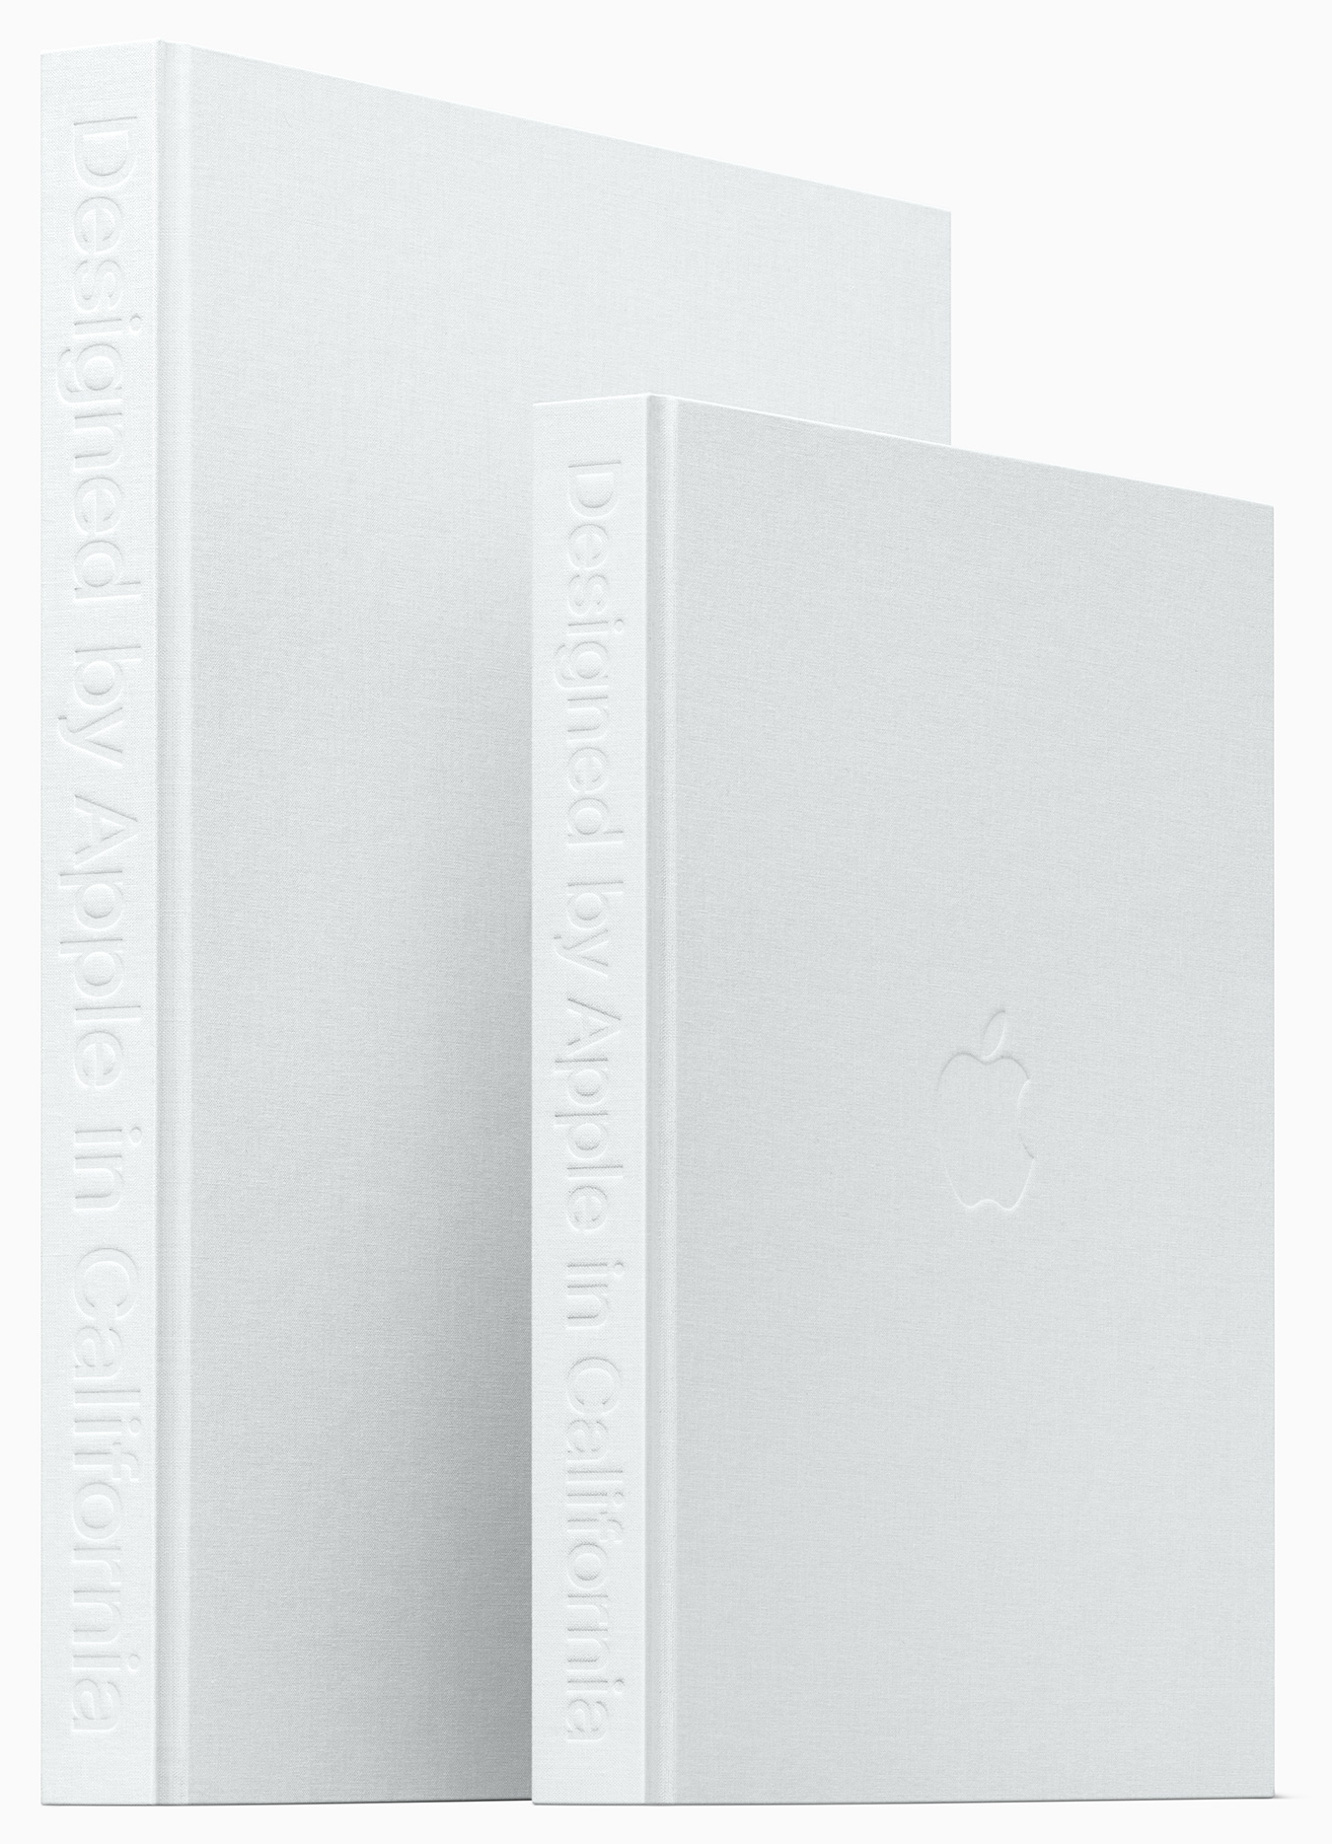 Apple releasing photo book chronicling 20 years of its designs